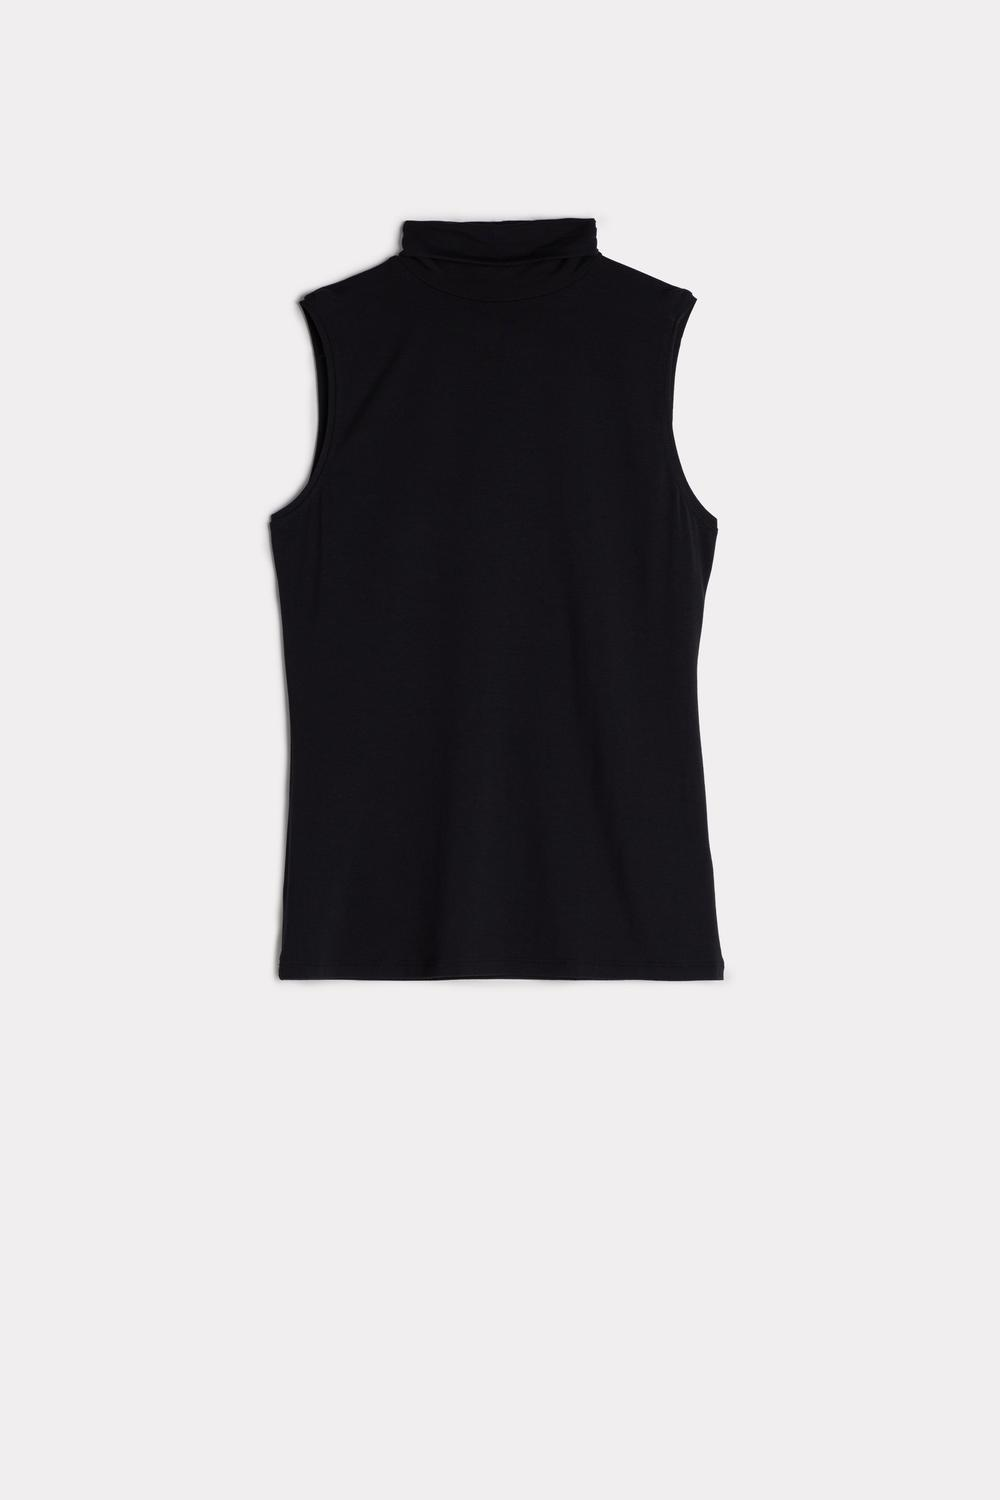 Modal High-Neck Vest Top